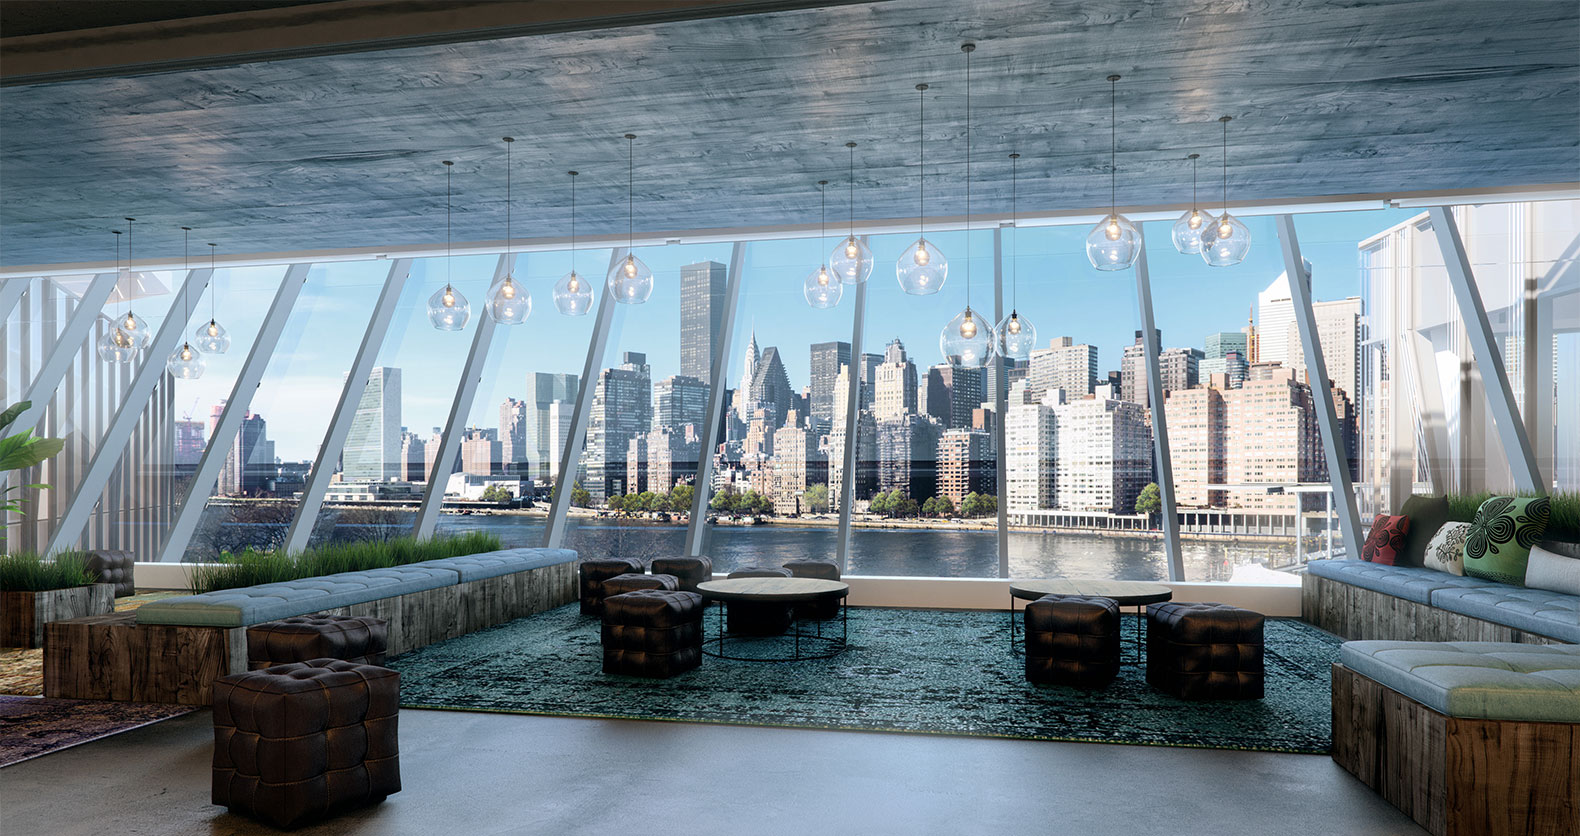 The Bridge at Cornell Tech: Forest City releases new images of crystalline incubator building on Roosevelt Island